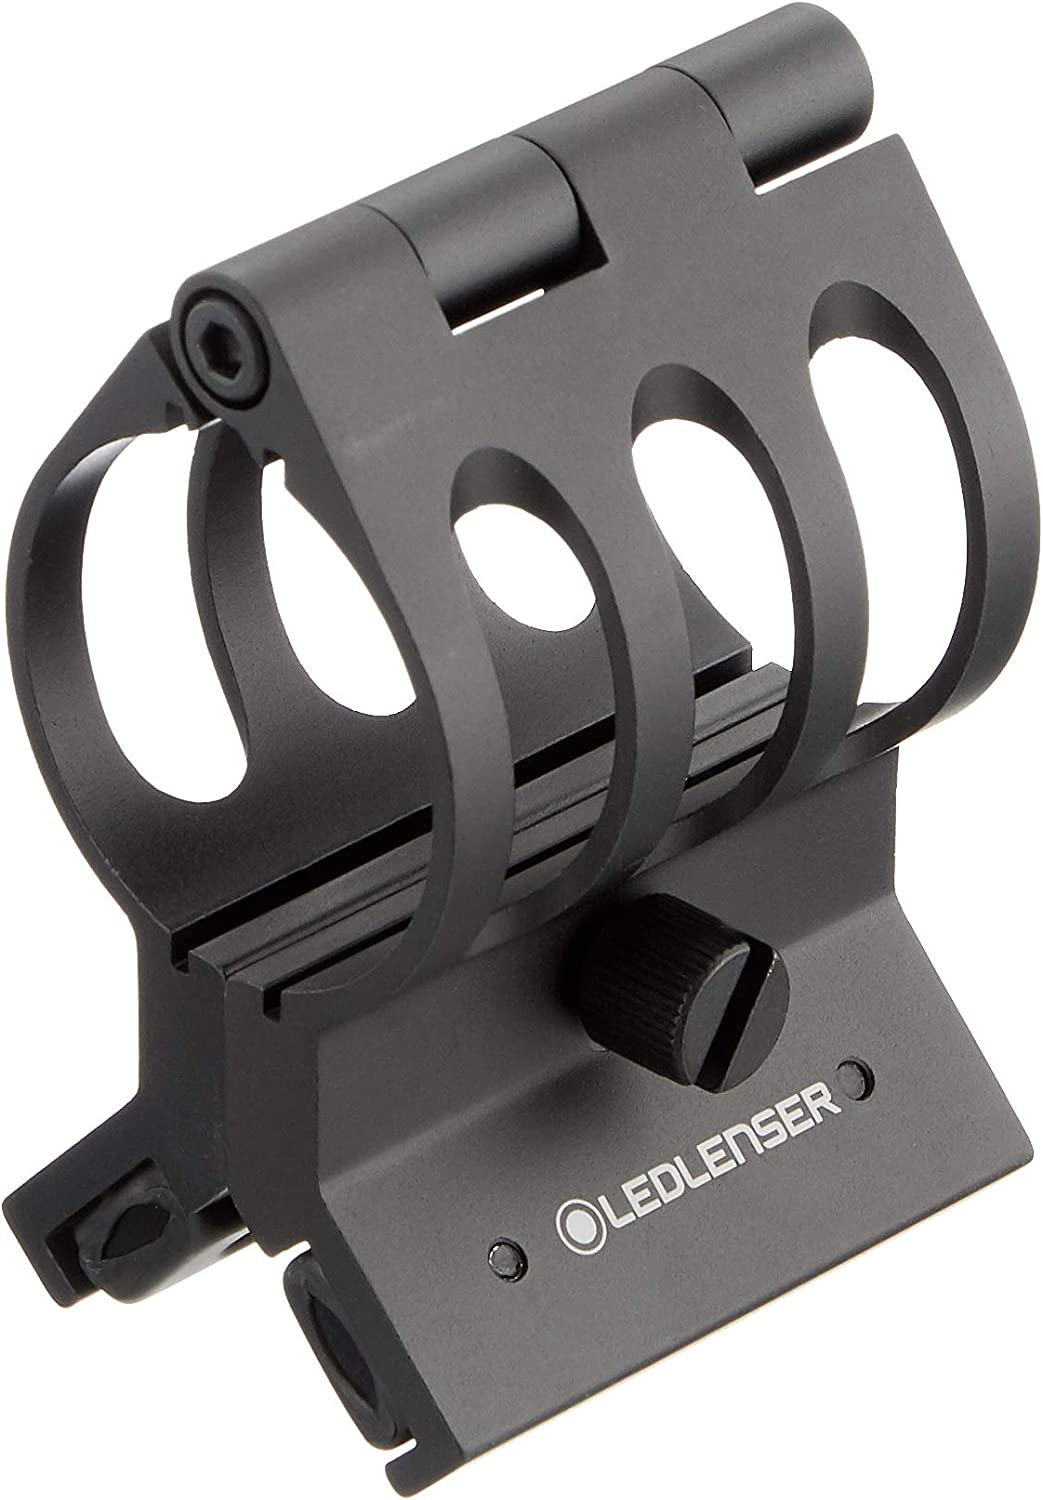 / Lighting Accessory Adapter, Black, LED LENSER MT10, MT14 LED Lenser 501033/ Mounting Adapter and/